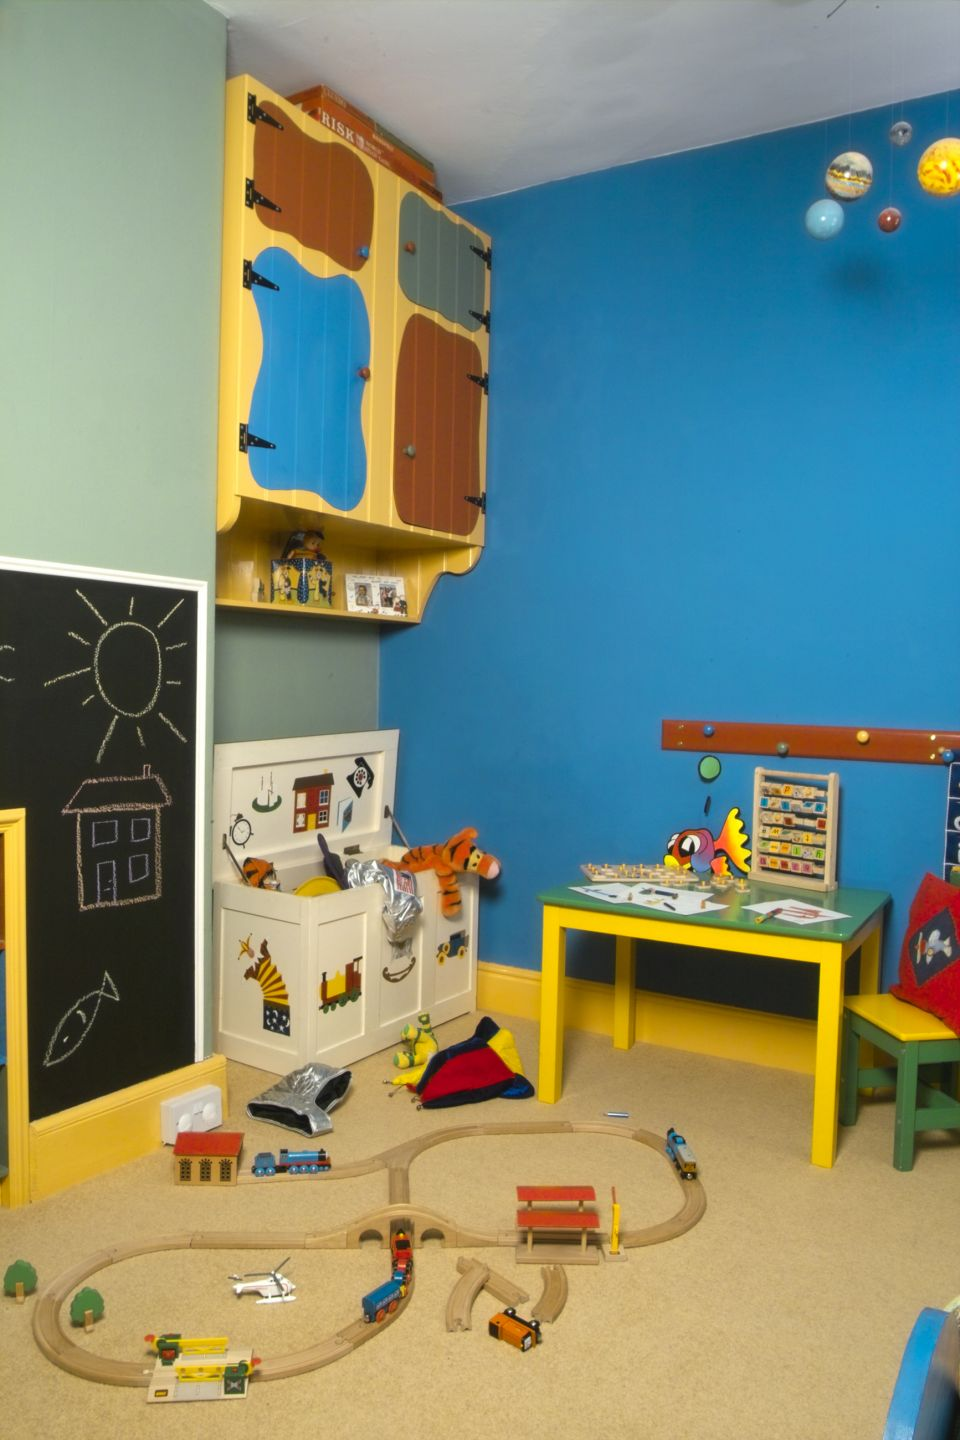 children's rooms can be colourful as here for a toddler, or more warm and cosy for a new born child.